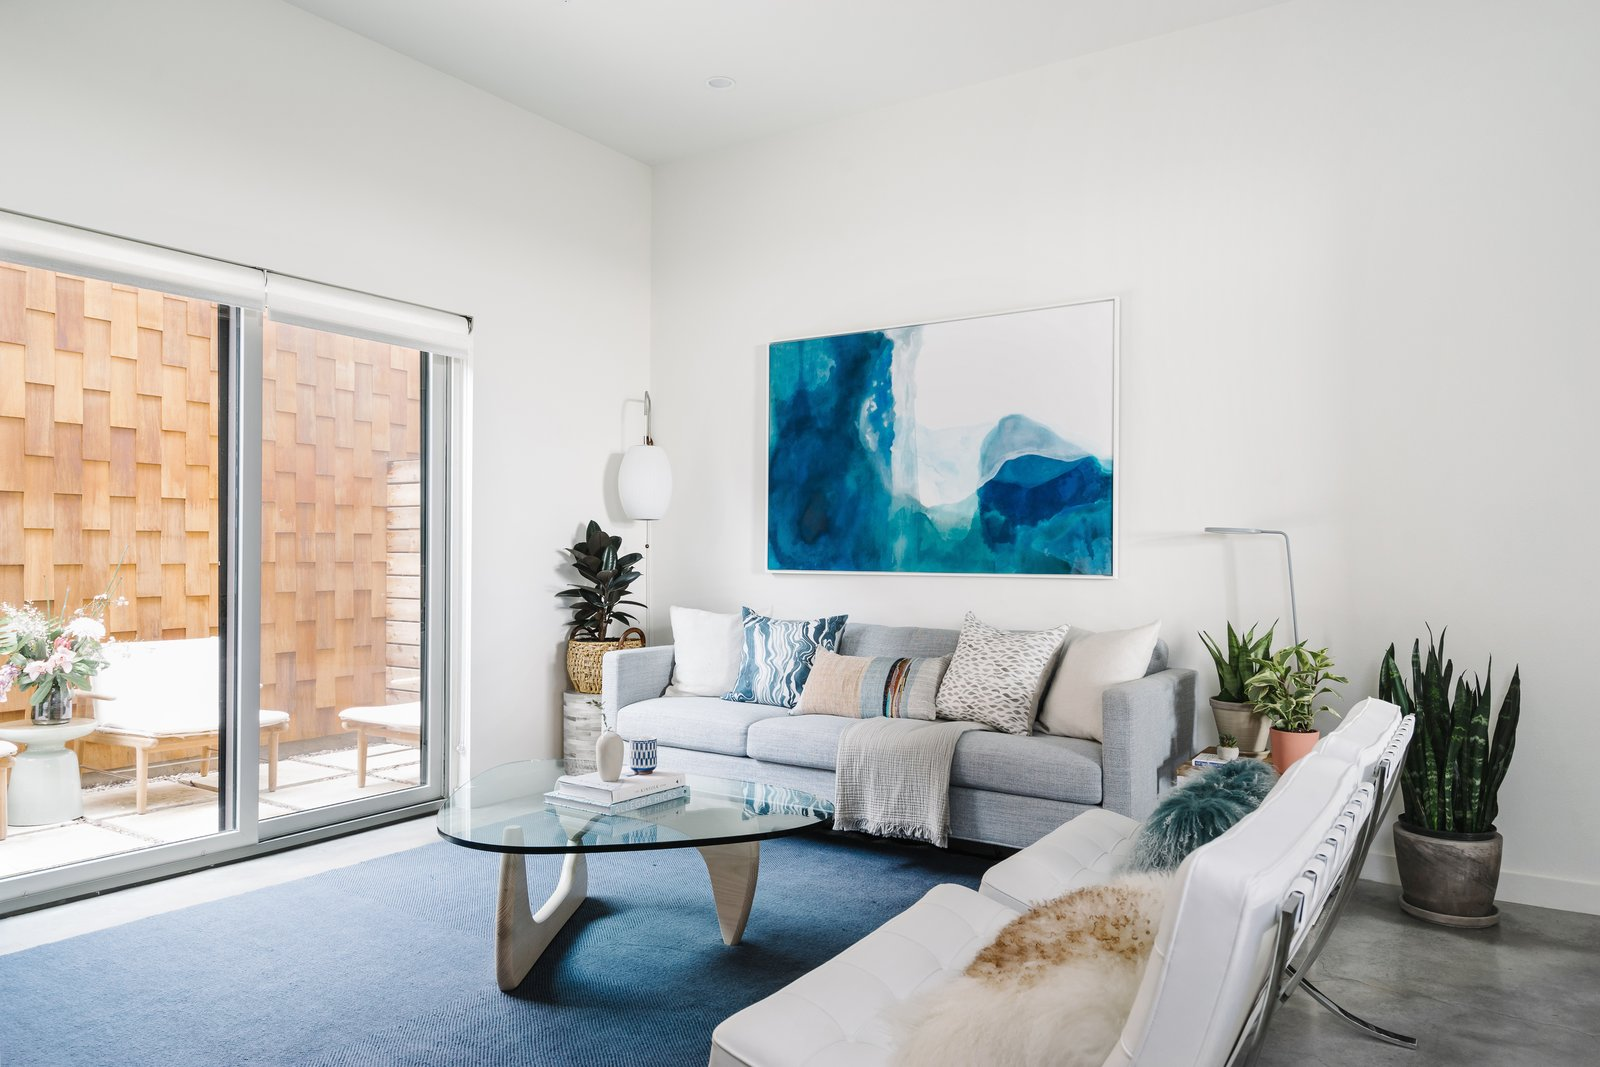 Tagged: Living Room, Chair, Lamps, End Tables, Sofa, Coffee Tables, Concrete Floor, and Floor Lighting. St. Barts-Inspired Accents Create Modern Tranquility in an Austin Tilley Row Home - Photo 1 of 7